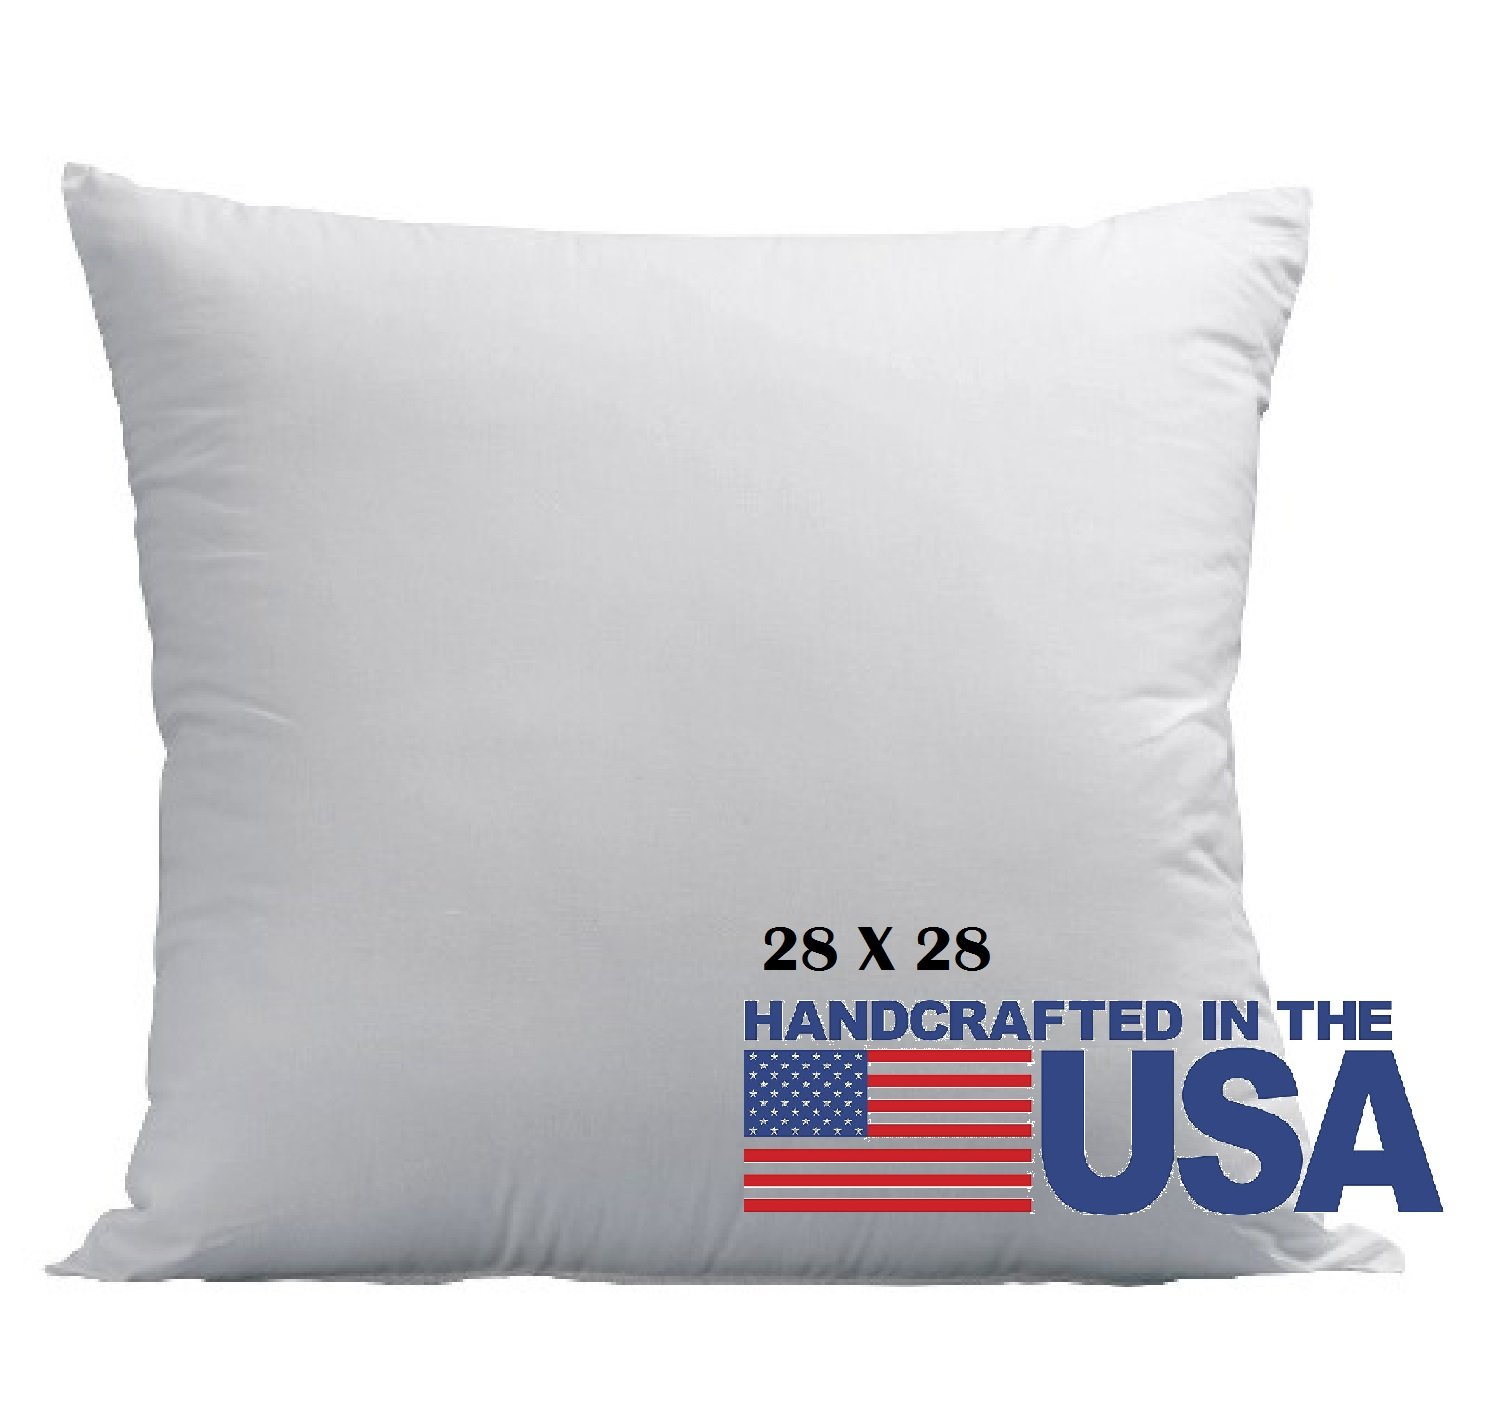 Deluxe Home Euro Pillows 28x28 Square Pillow Insert for Decorative Bed Pillow Sham - Hypoallergenic, Down Alternative Fill - Crafted in the USA by Basics (1 Pack)